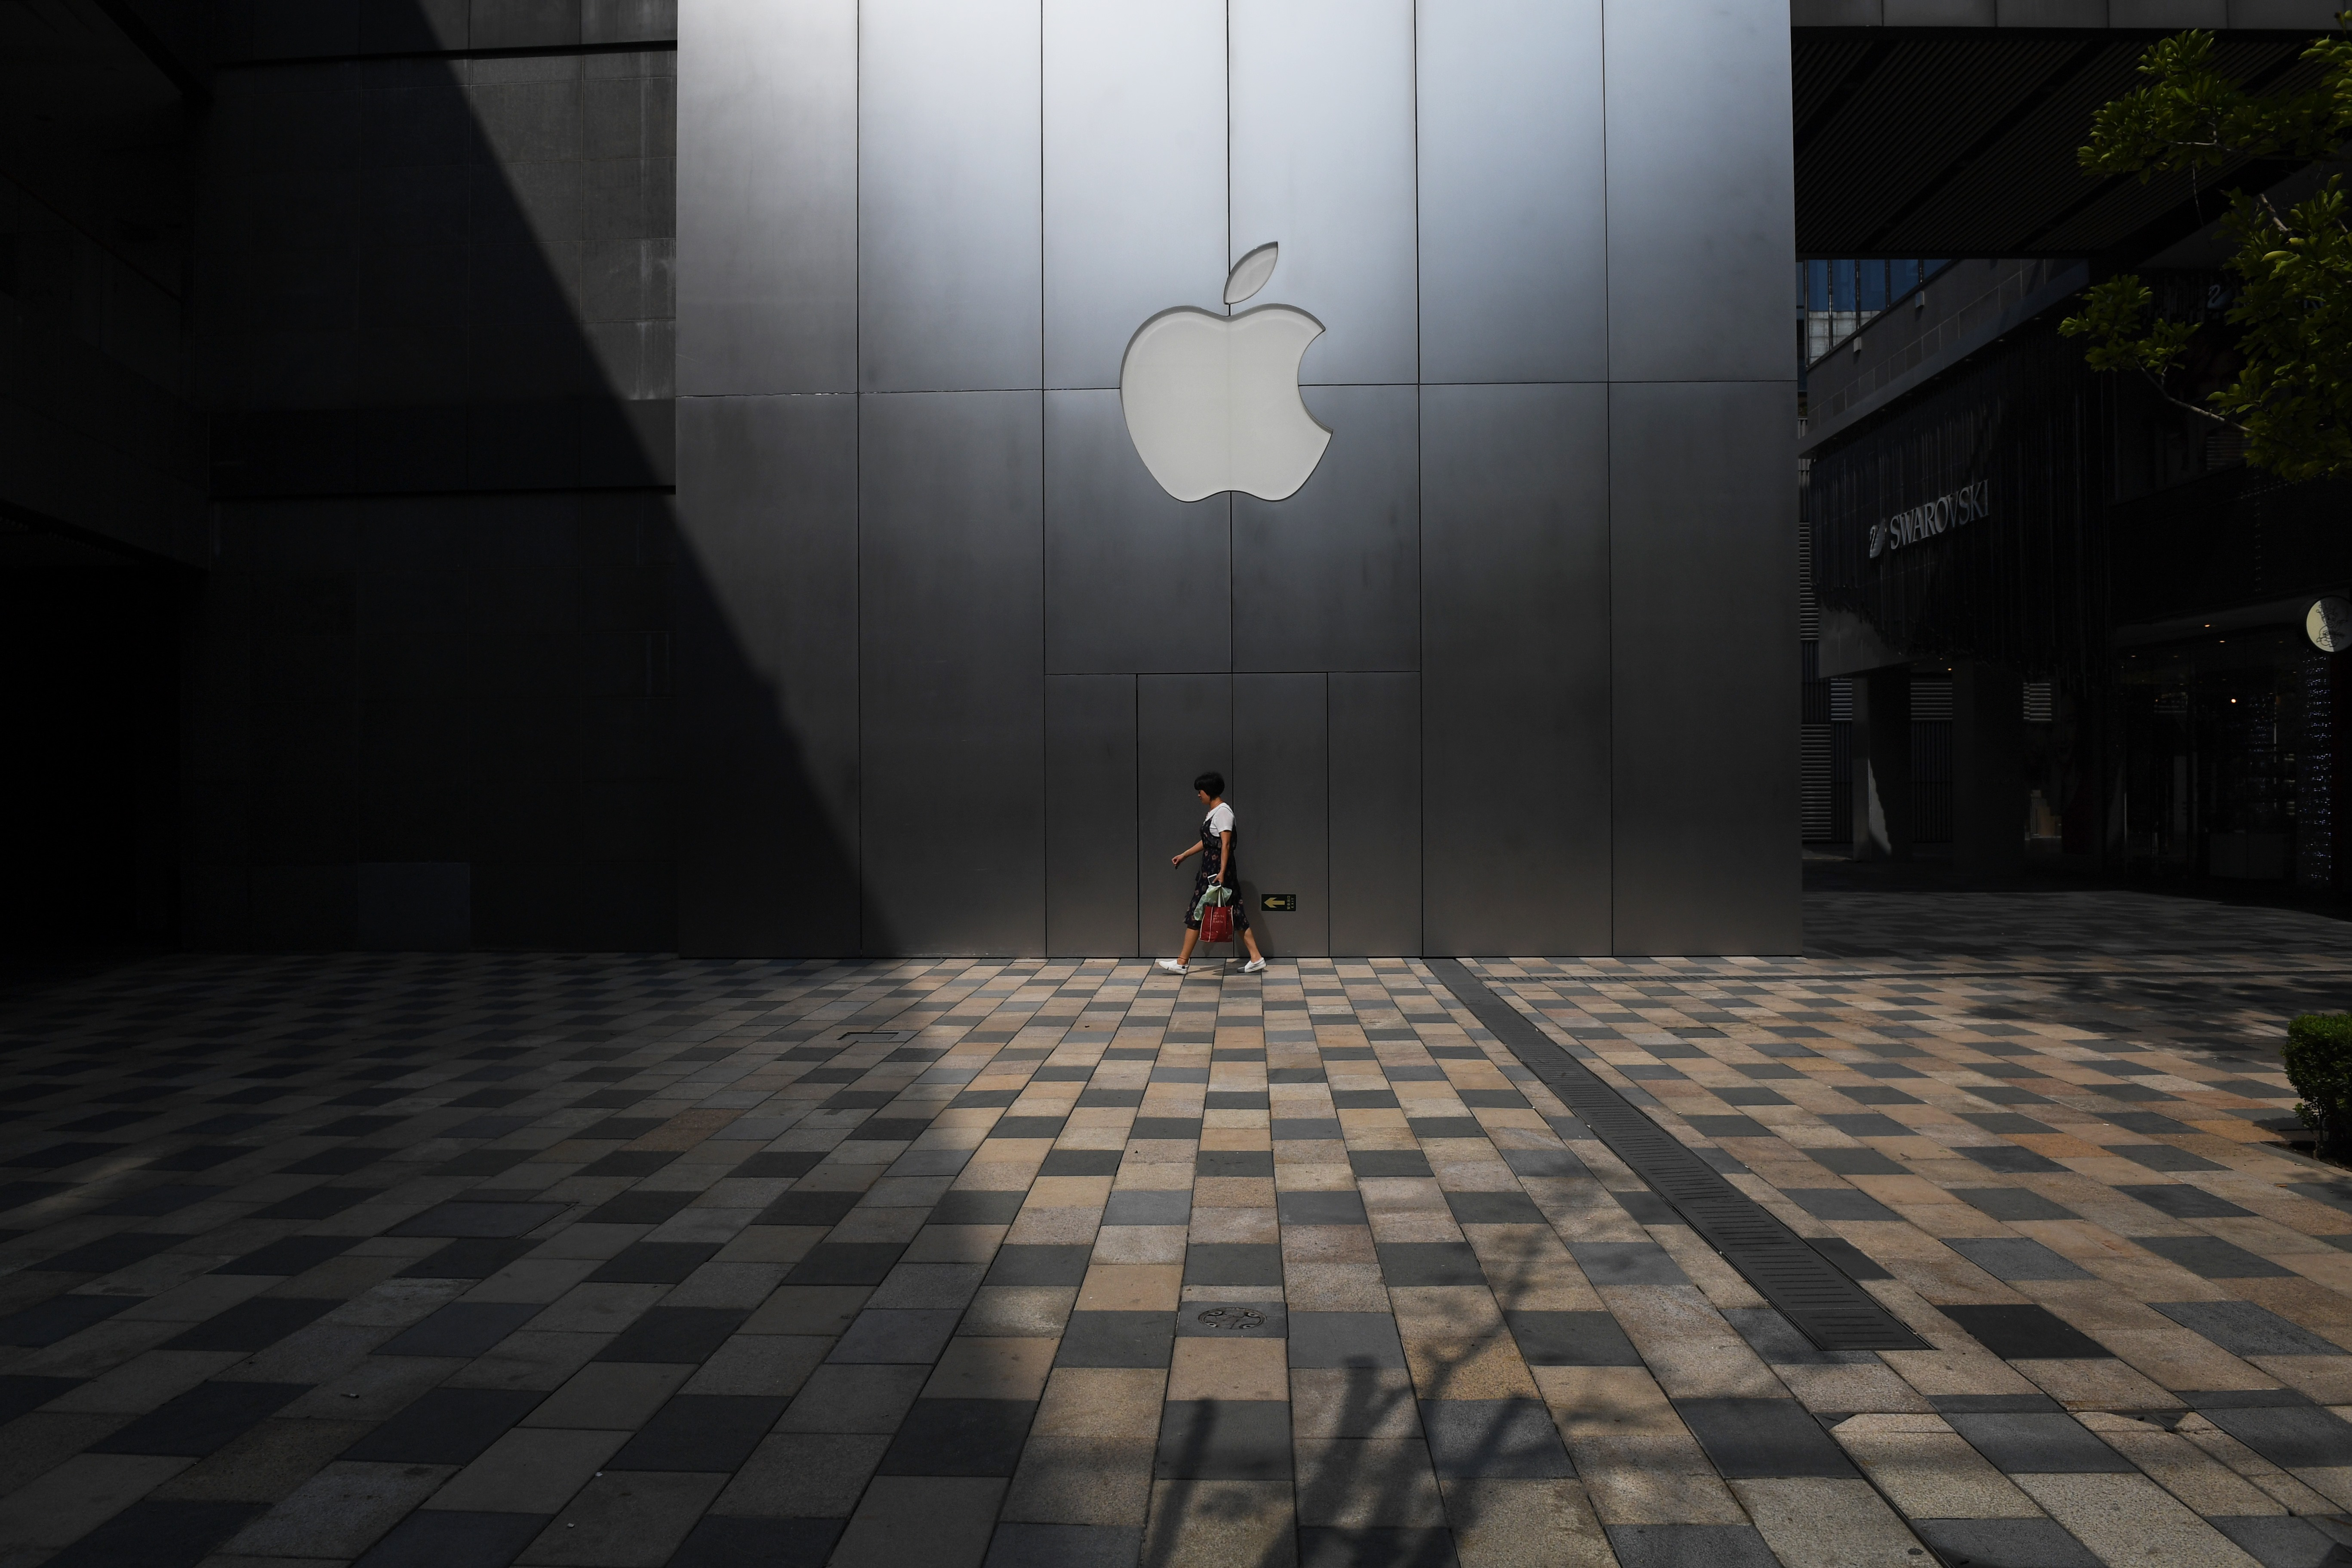 A person walks past an Apple store in Beijing, China.